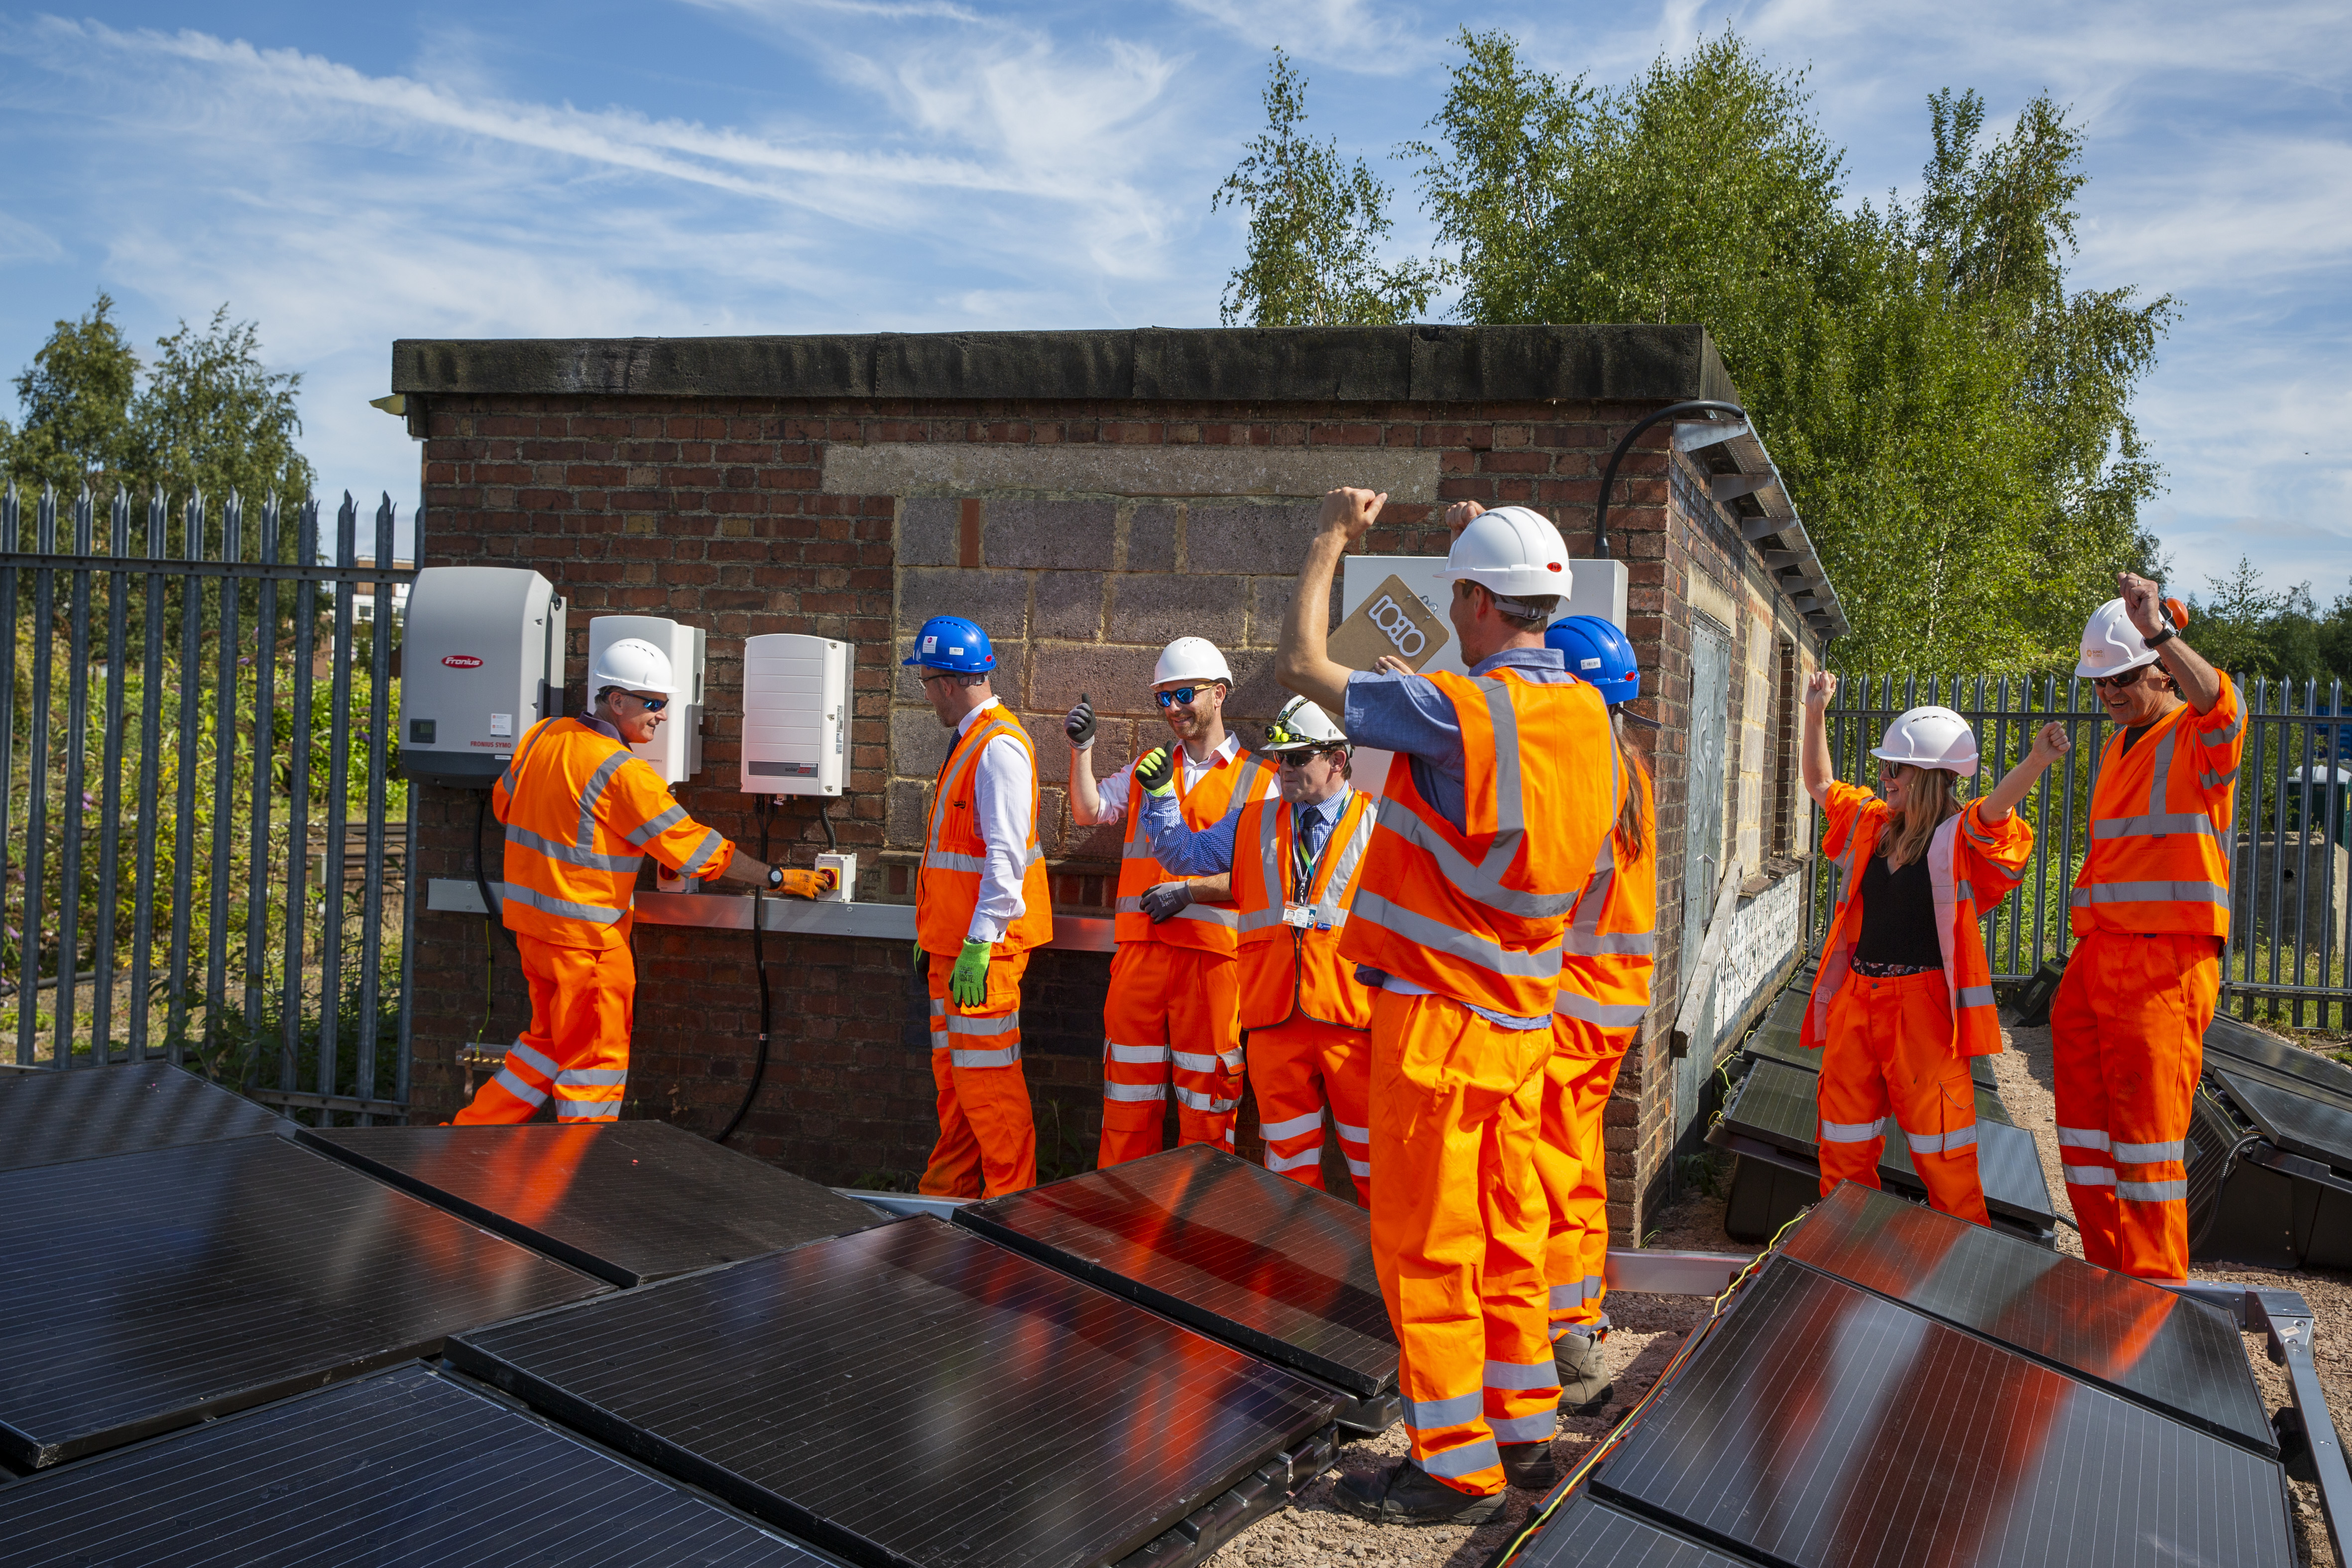 Project kicks off move to power UK's trains from solar